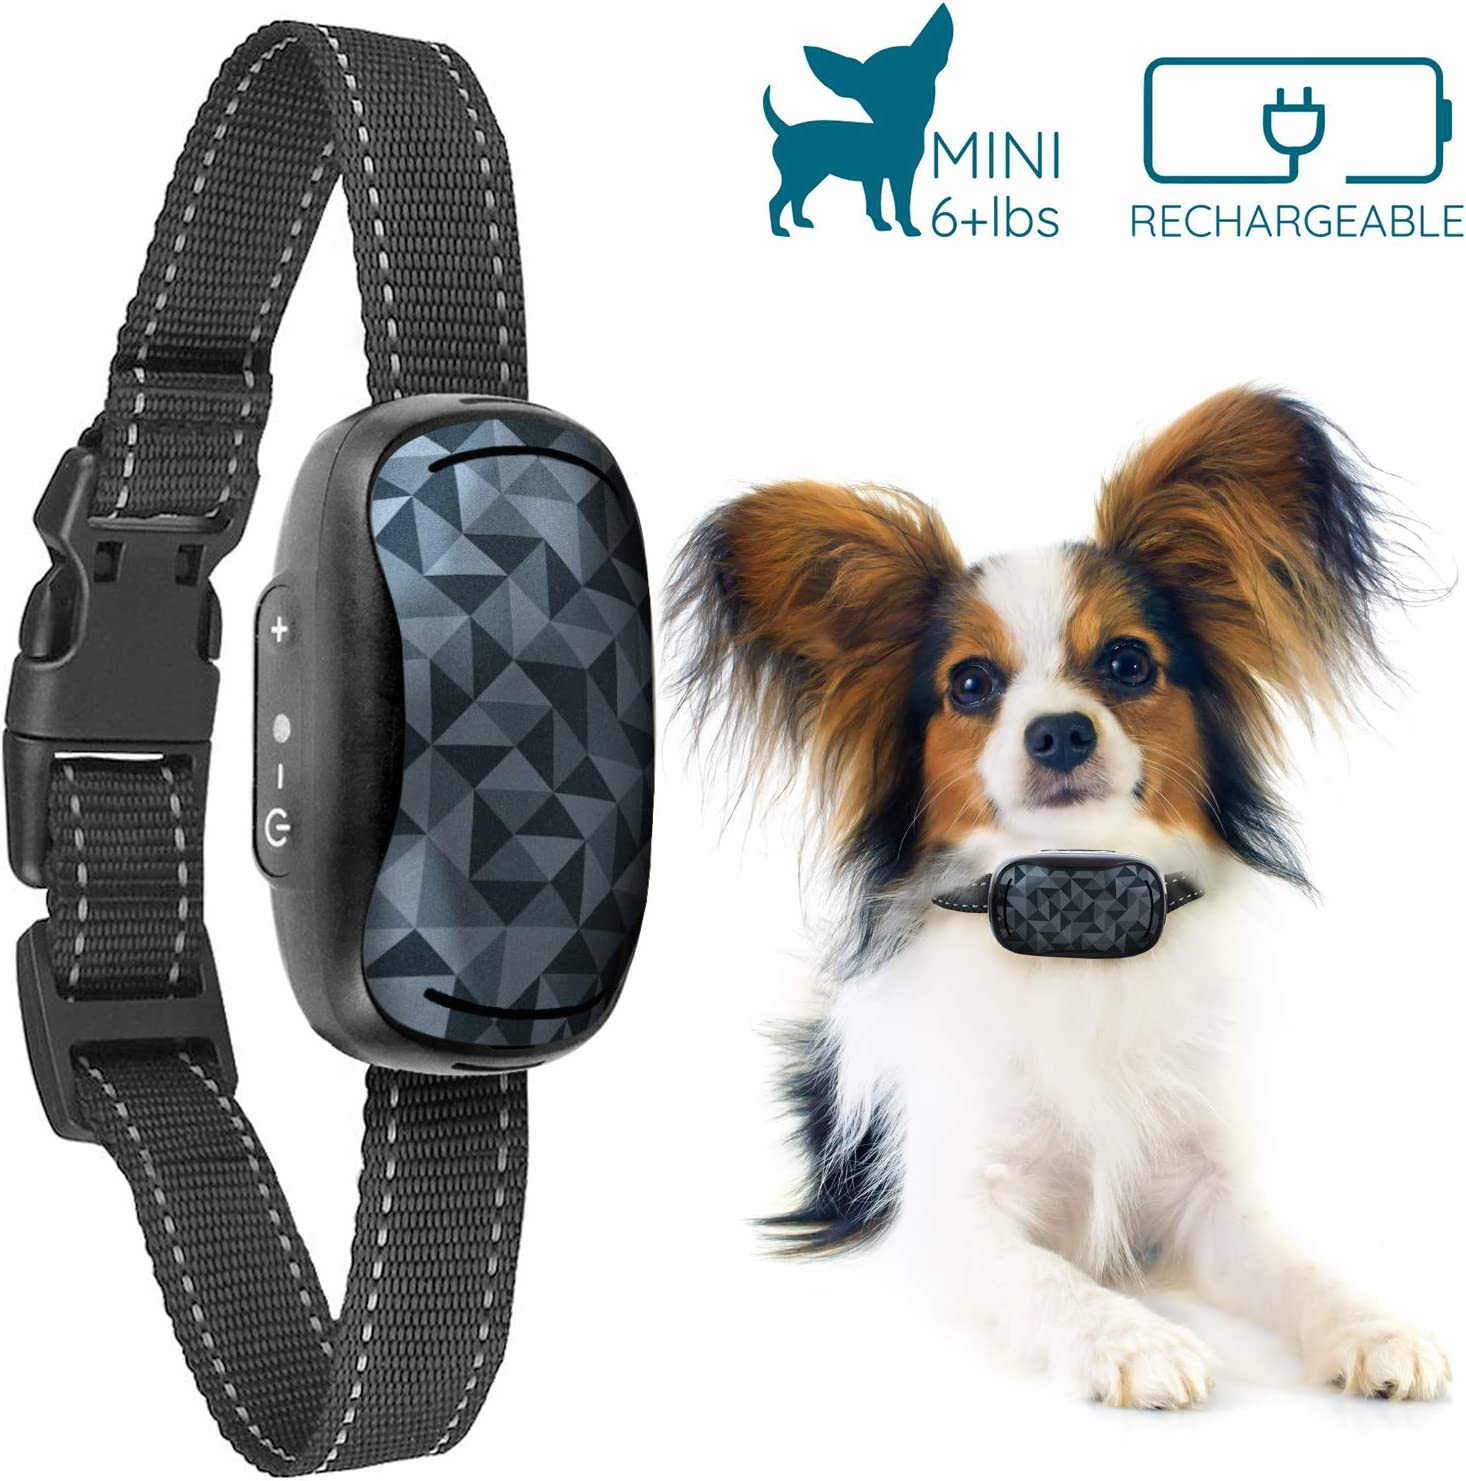 GoodBoy Small Rechargeable Dog Bark Collar for Tiny to Medium Dogs Weatherproof and Vibrating Anti Bark Training Device That is Smallest Most Safe On Amazon – No Shock No Spiky Prongs 6 lbs